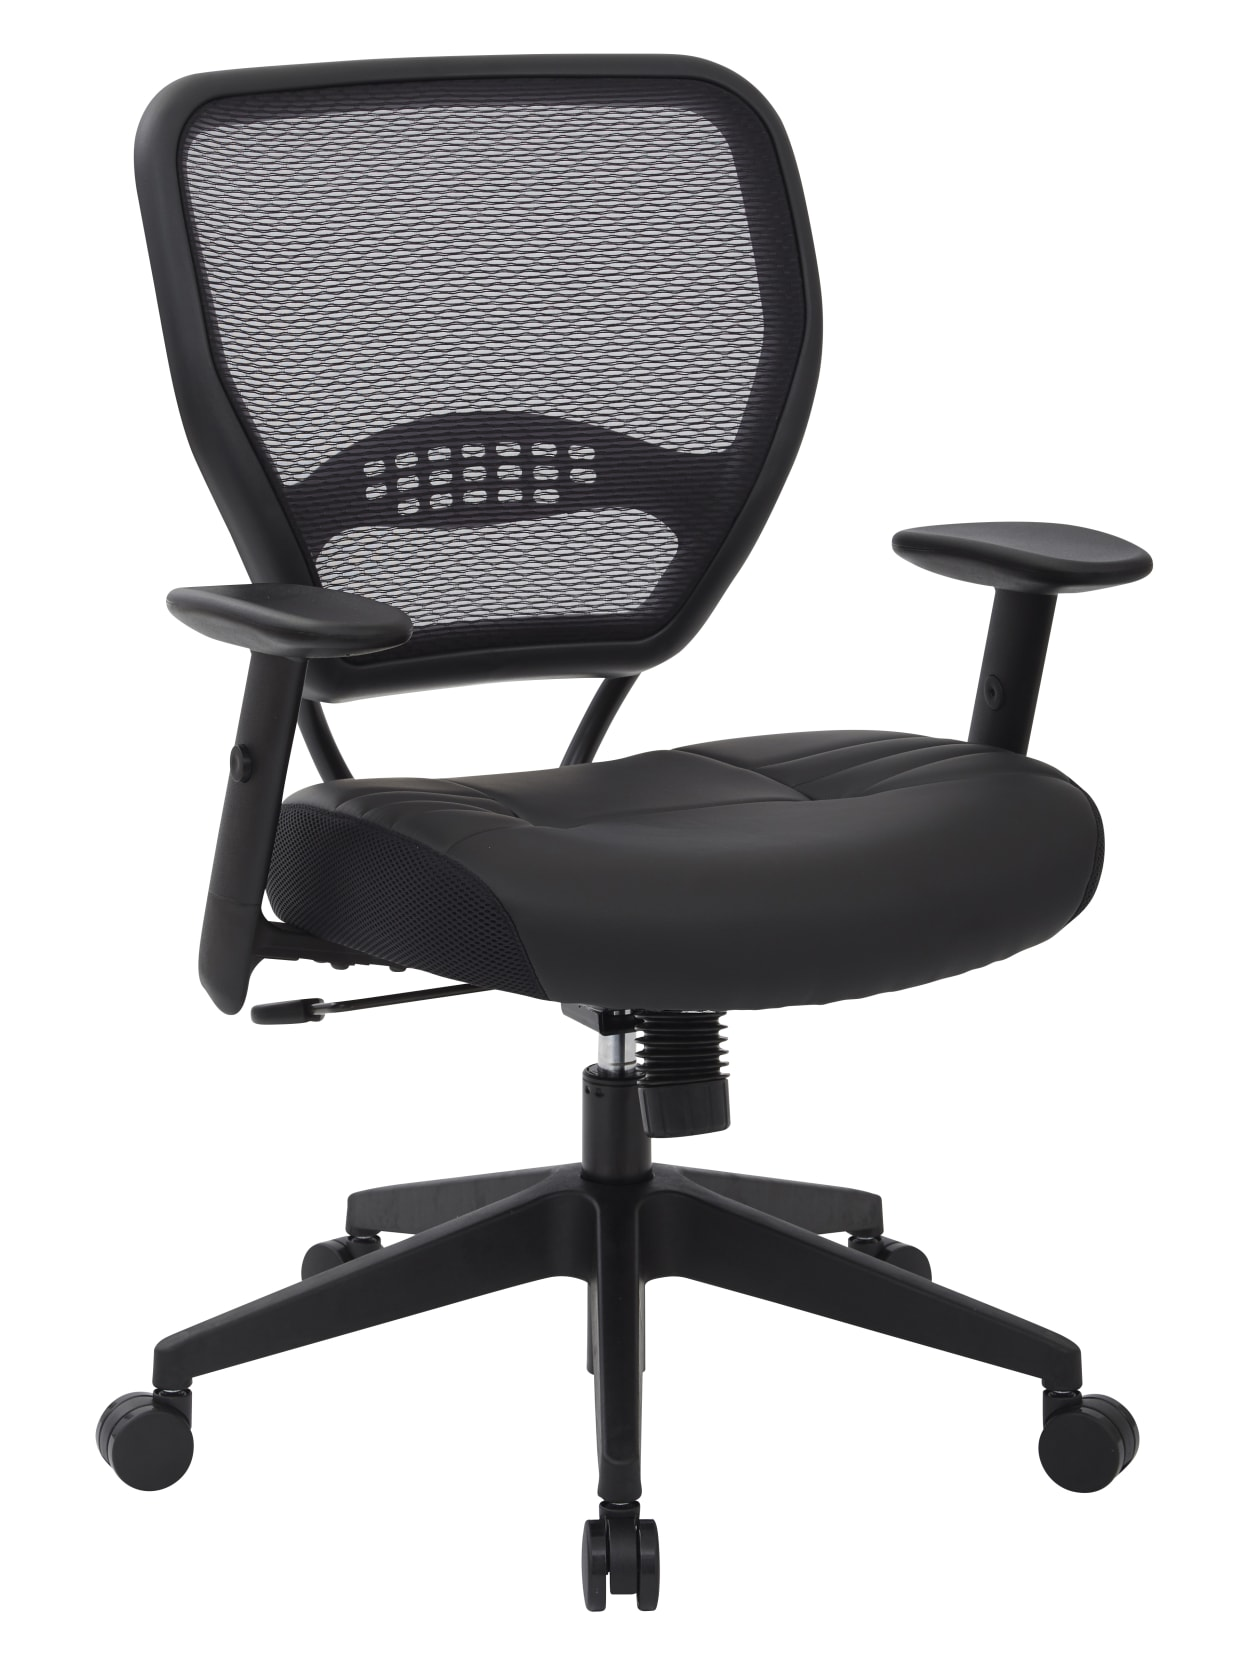 Office Star E Seating Chair Black